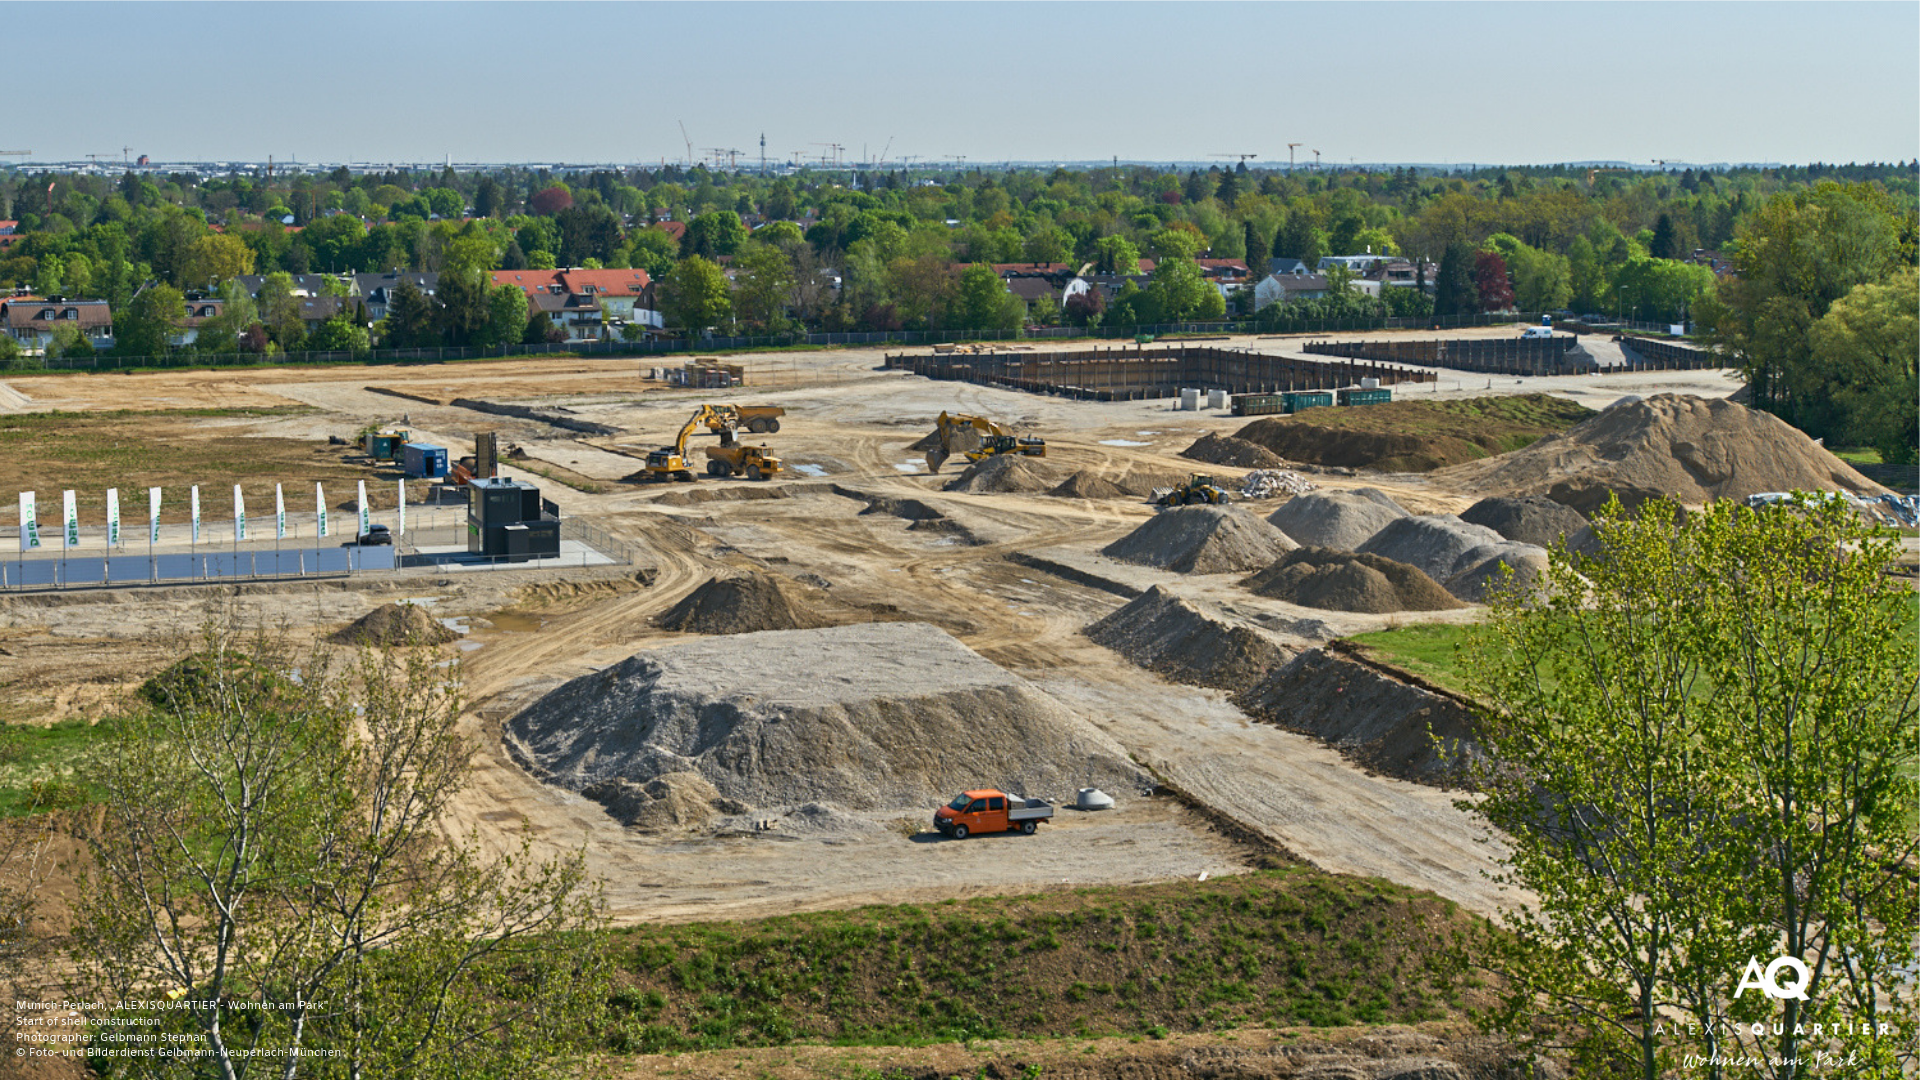 'ALEXISQUARTIER – Wohnen am Park' in Munich-Perlach: Start of shell construction